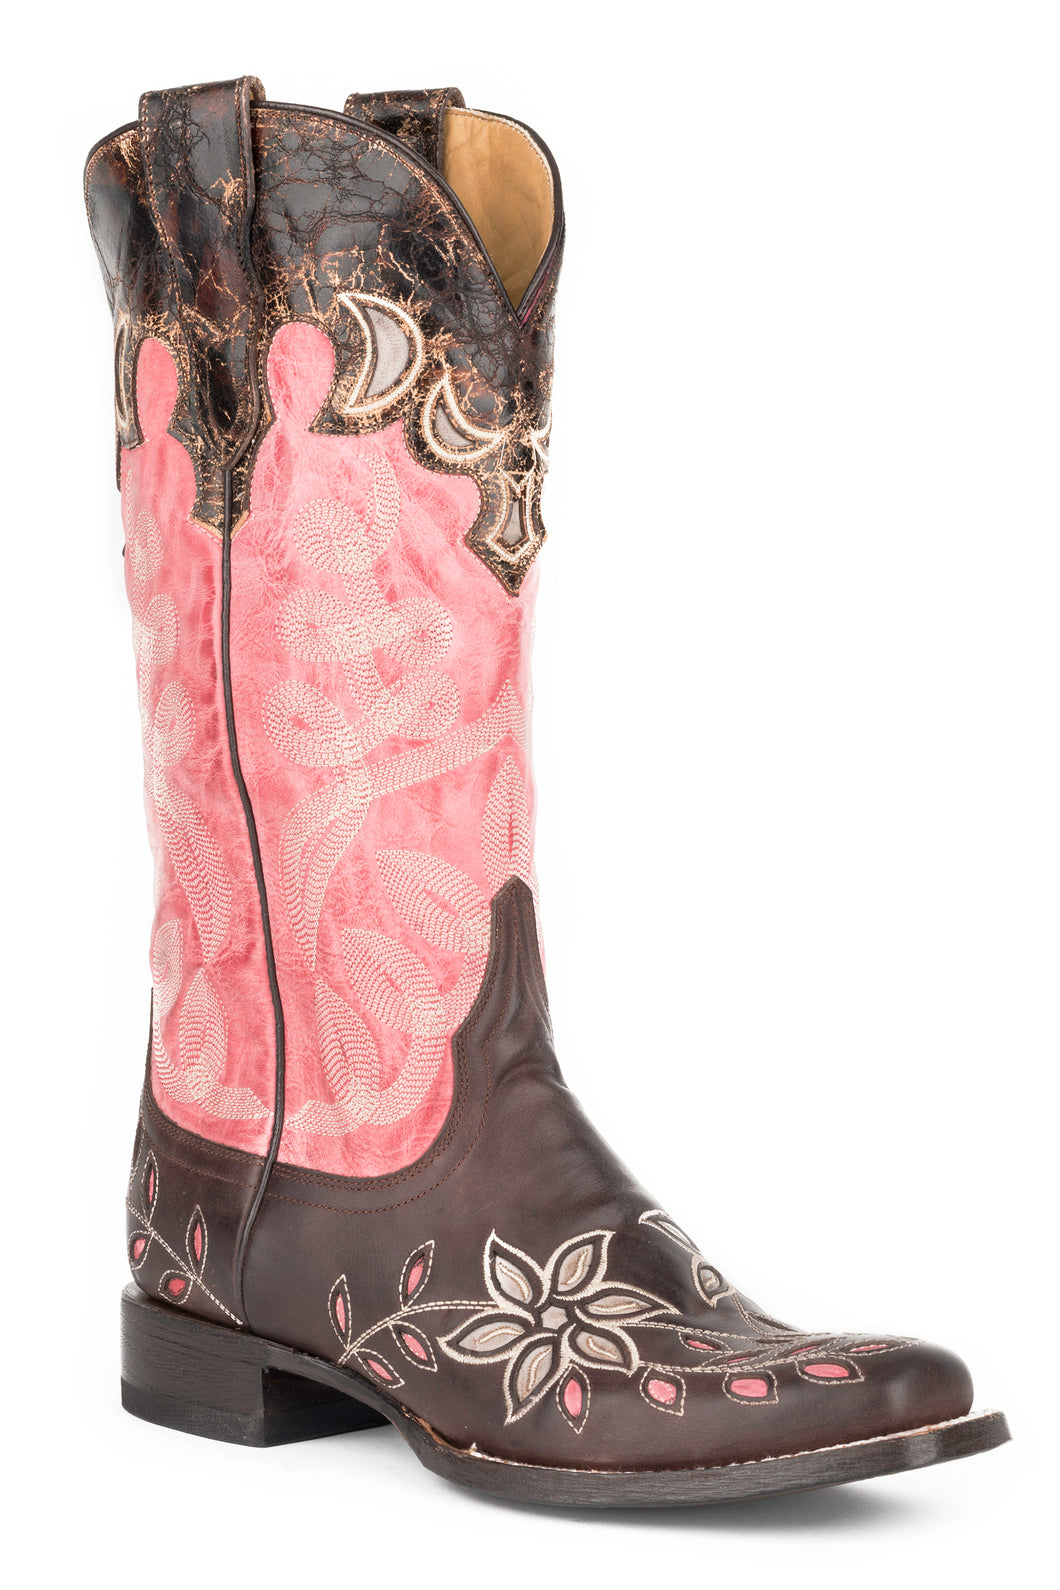 April Boot Womens Boot Brown Vamp With Star Burst Underlay